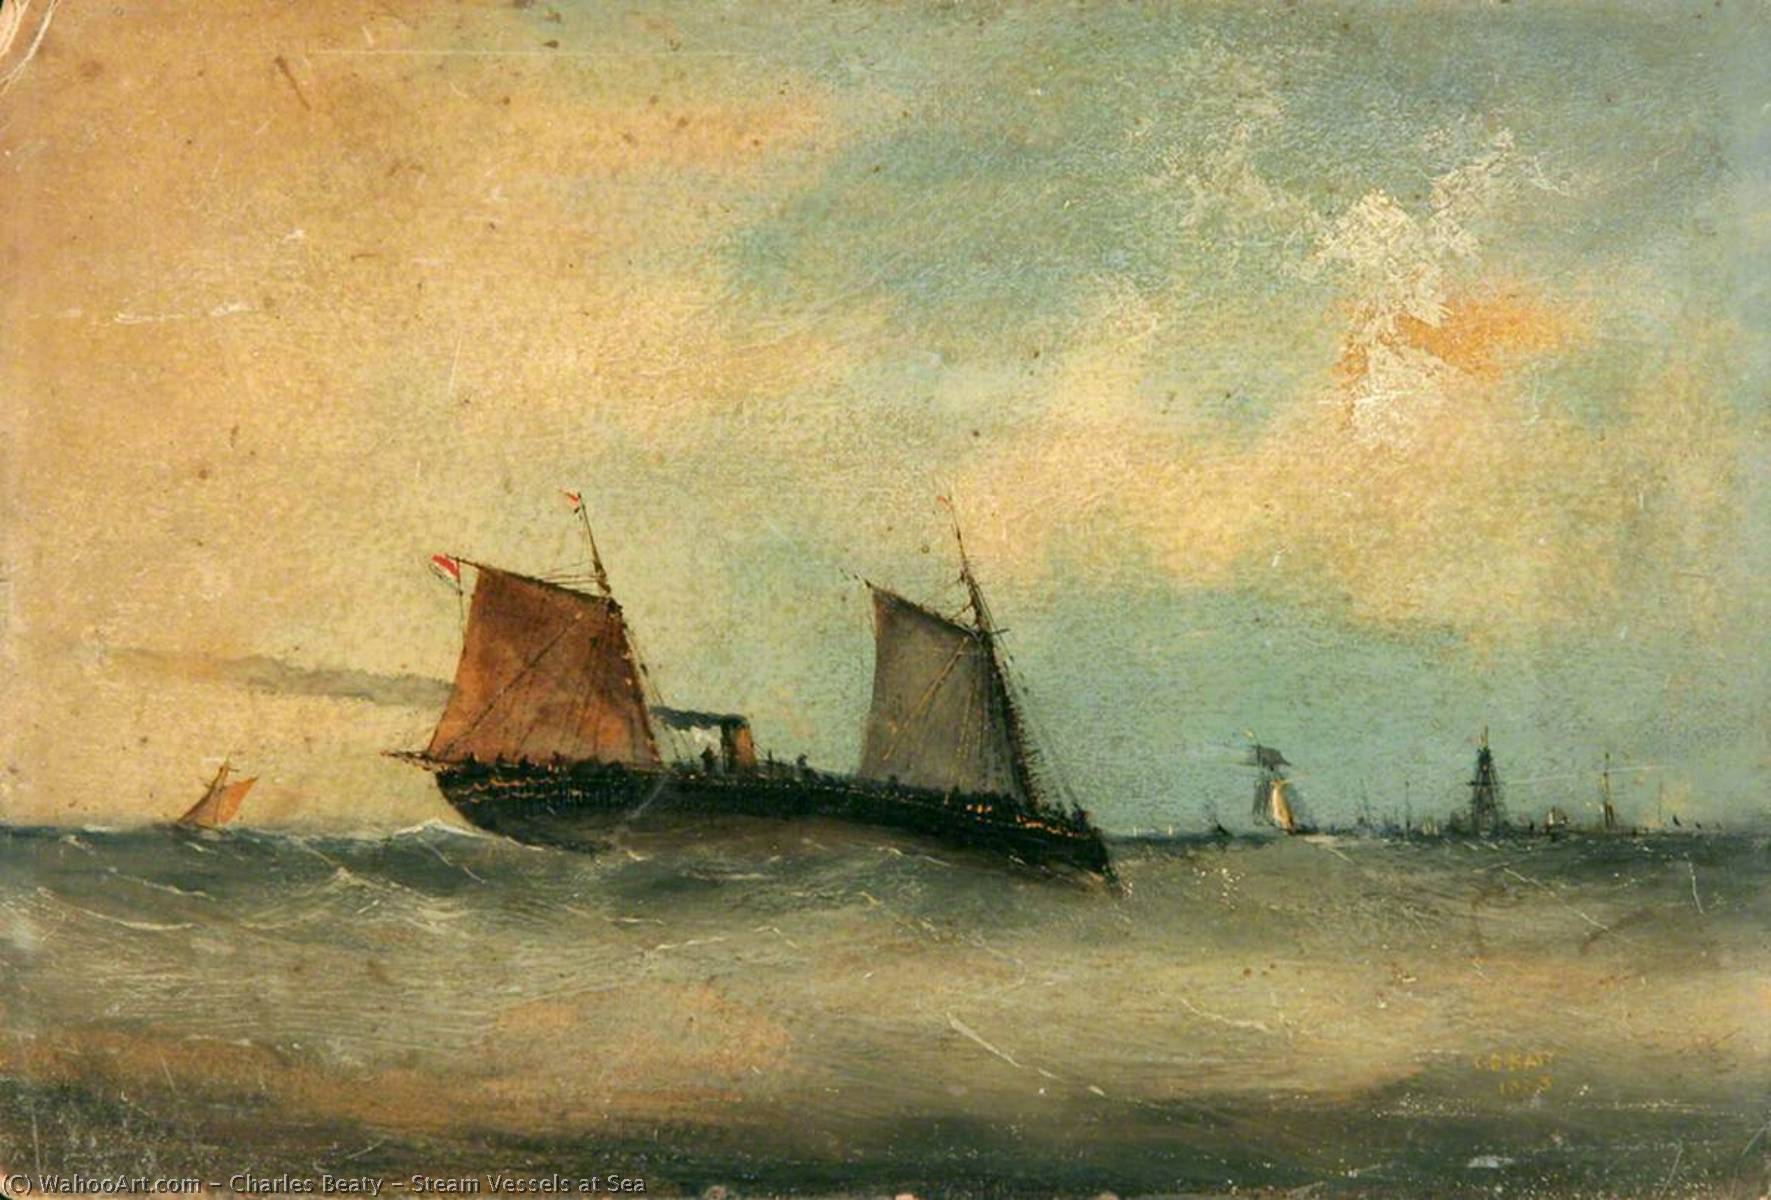 Steam Vessels at Sea, 1883 by Charles Beaty | Reproductions Charles Beaty | ArtsDot.com